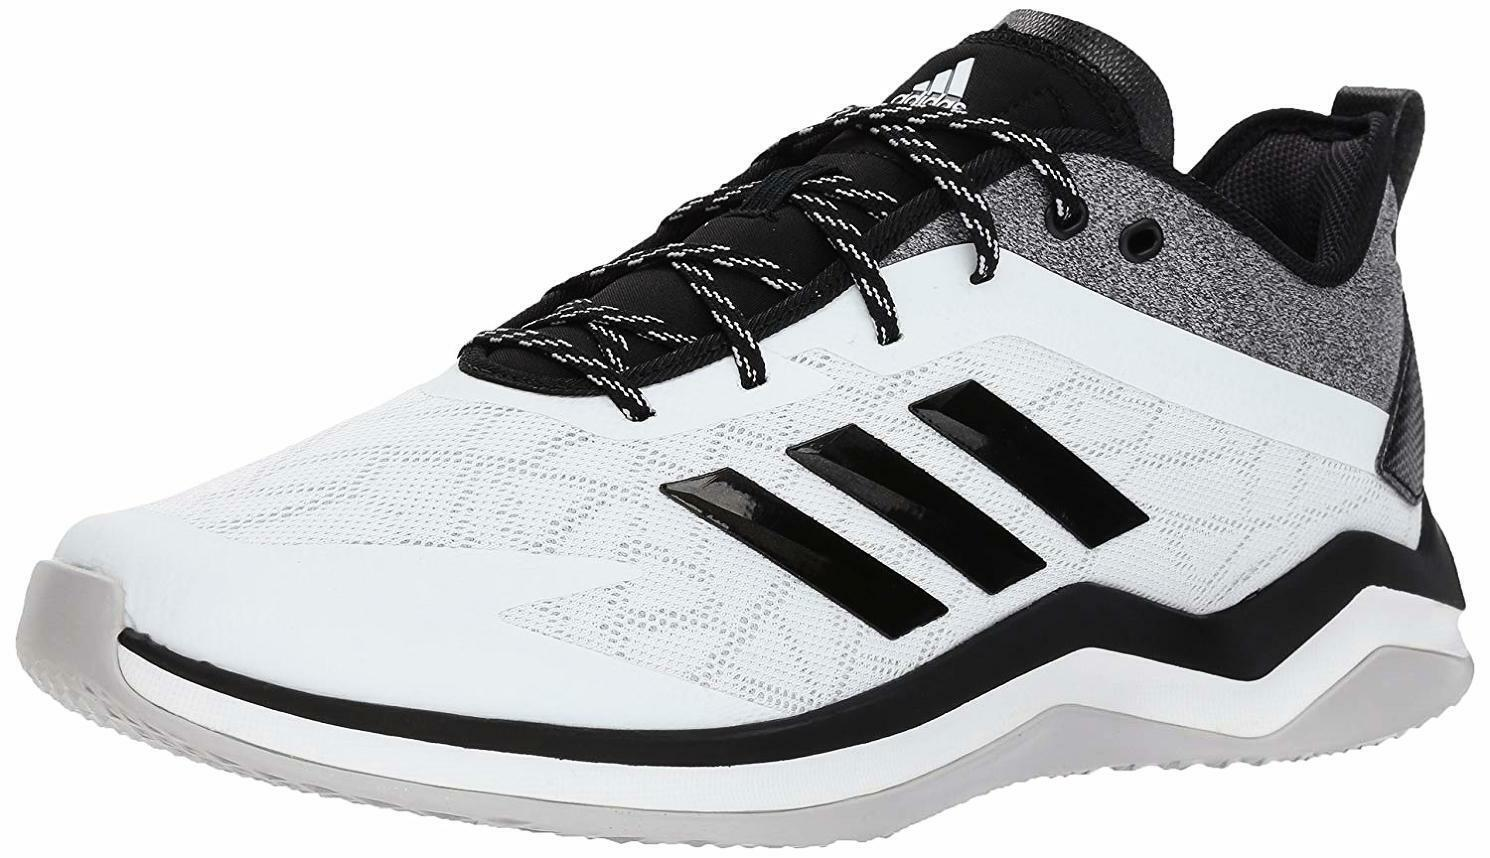 Adidas Men's Speed Trainer 4 Baseball shoes - Choose SZ color